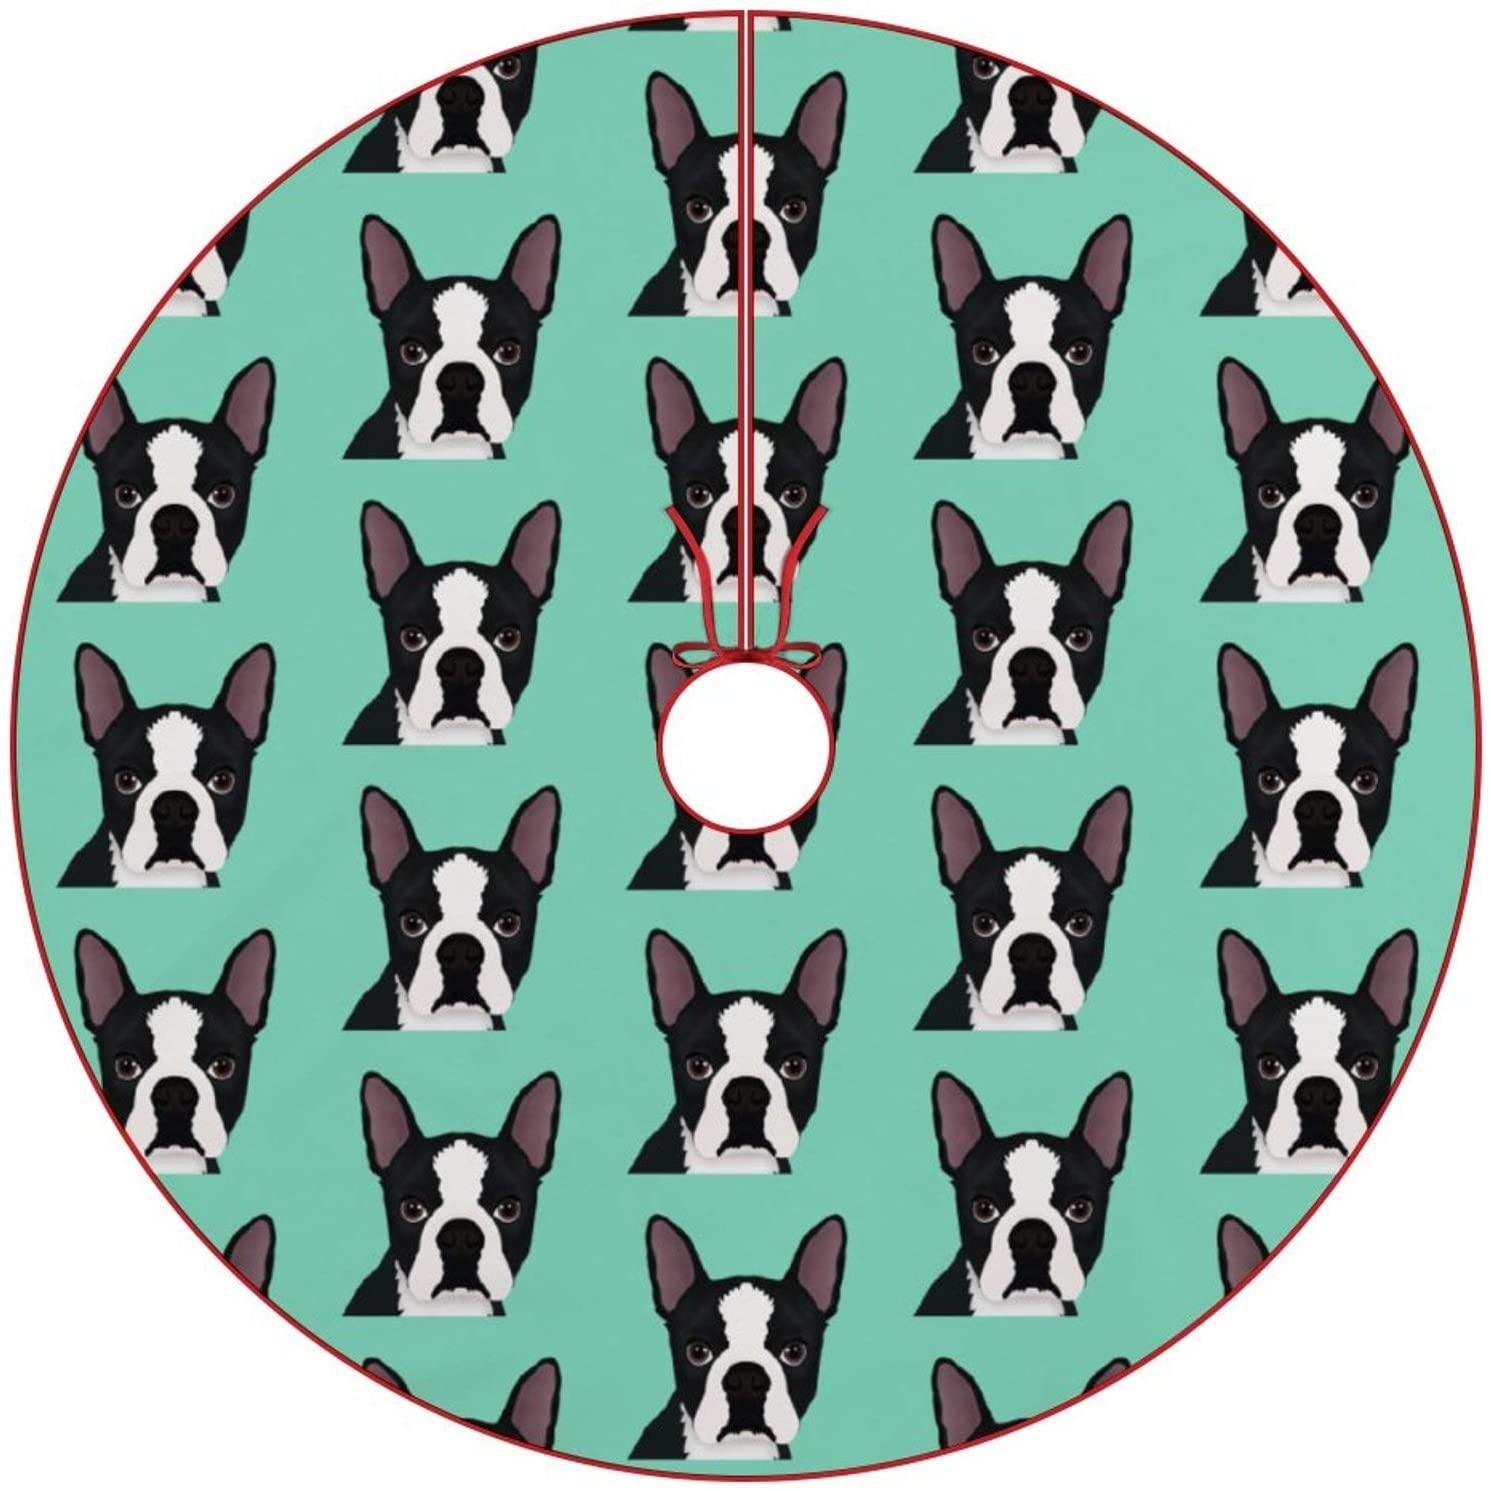 JHSLAJ Boston Terrier Cartoon Brushed Christmas Tree Skirt Xmas New Year Holiday Decorations Indoor Outdoor for Holiday Party